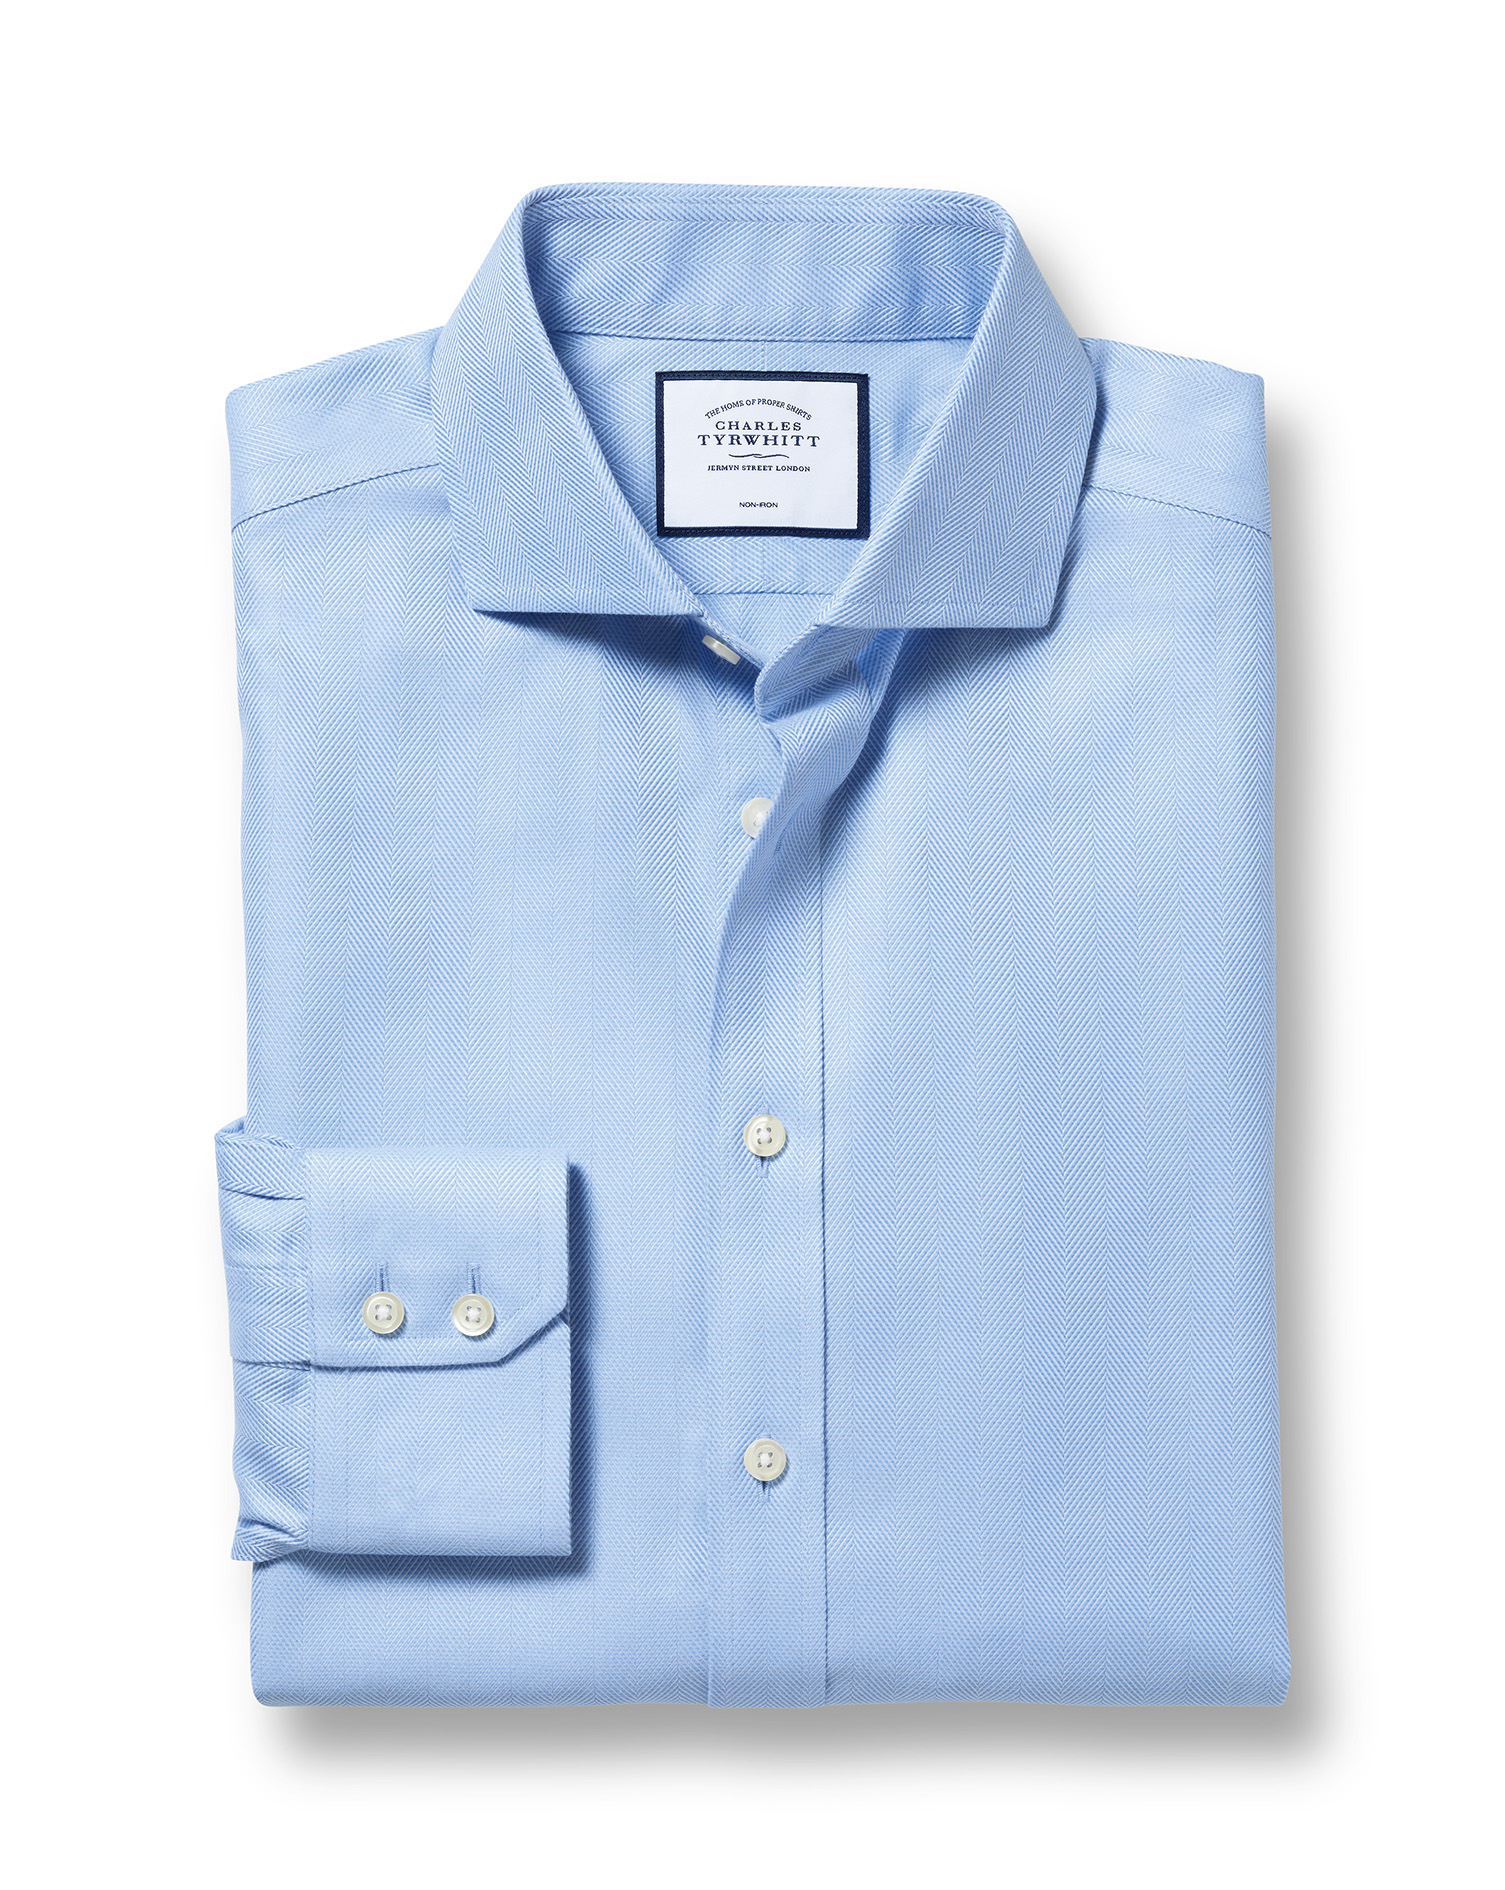 Slim Fit Cutaway Non-Iron Herringbone Sky Blue Cotton Formal Shirt Single Cuff Size 16/32 by Charles